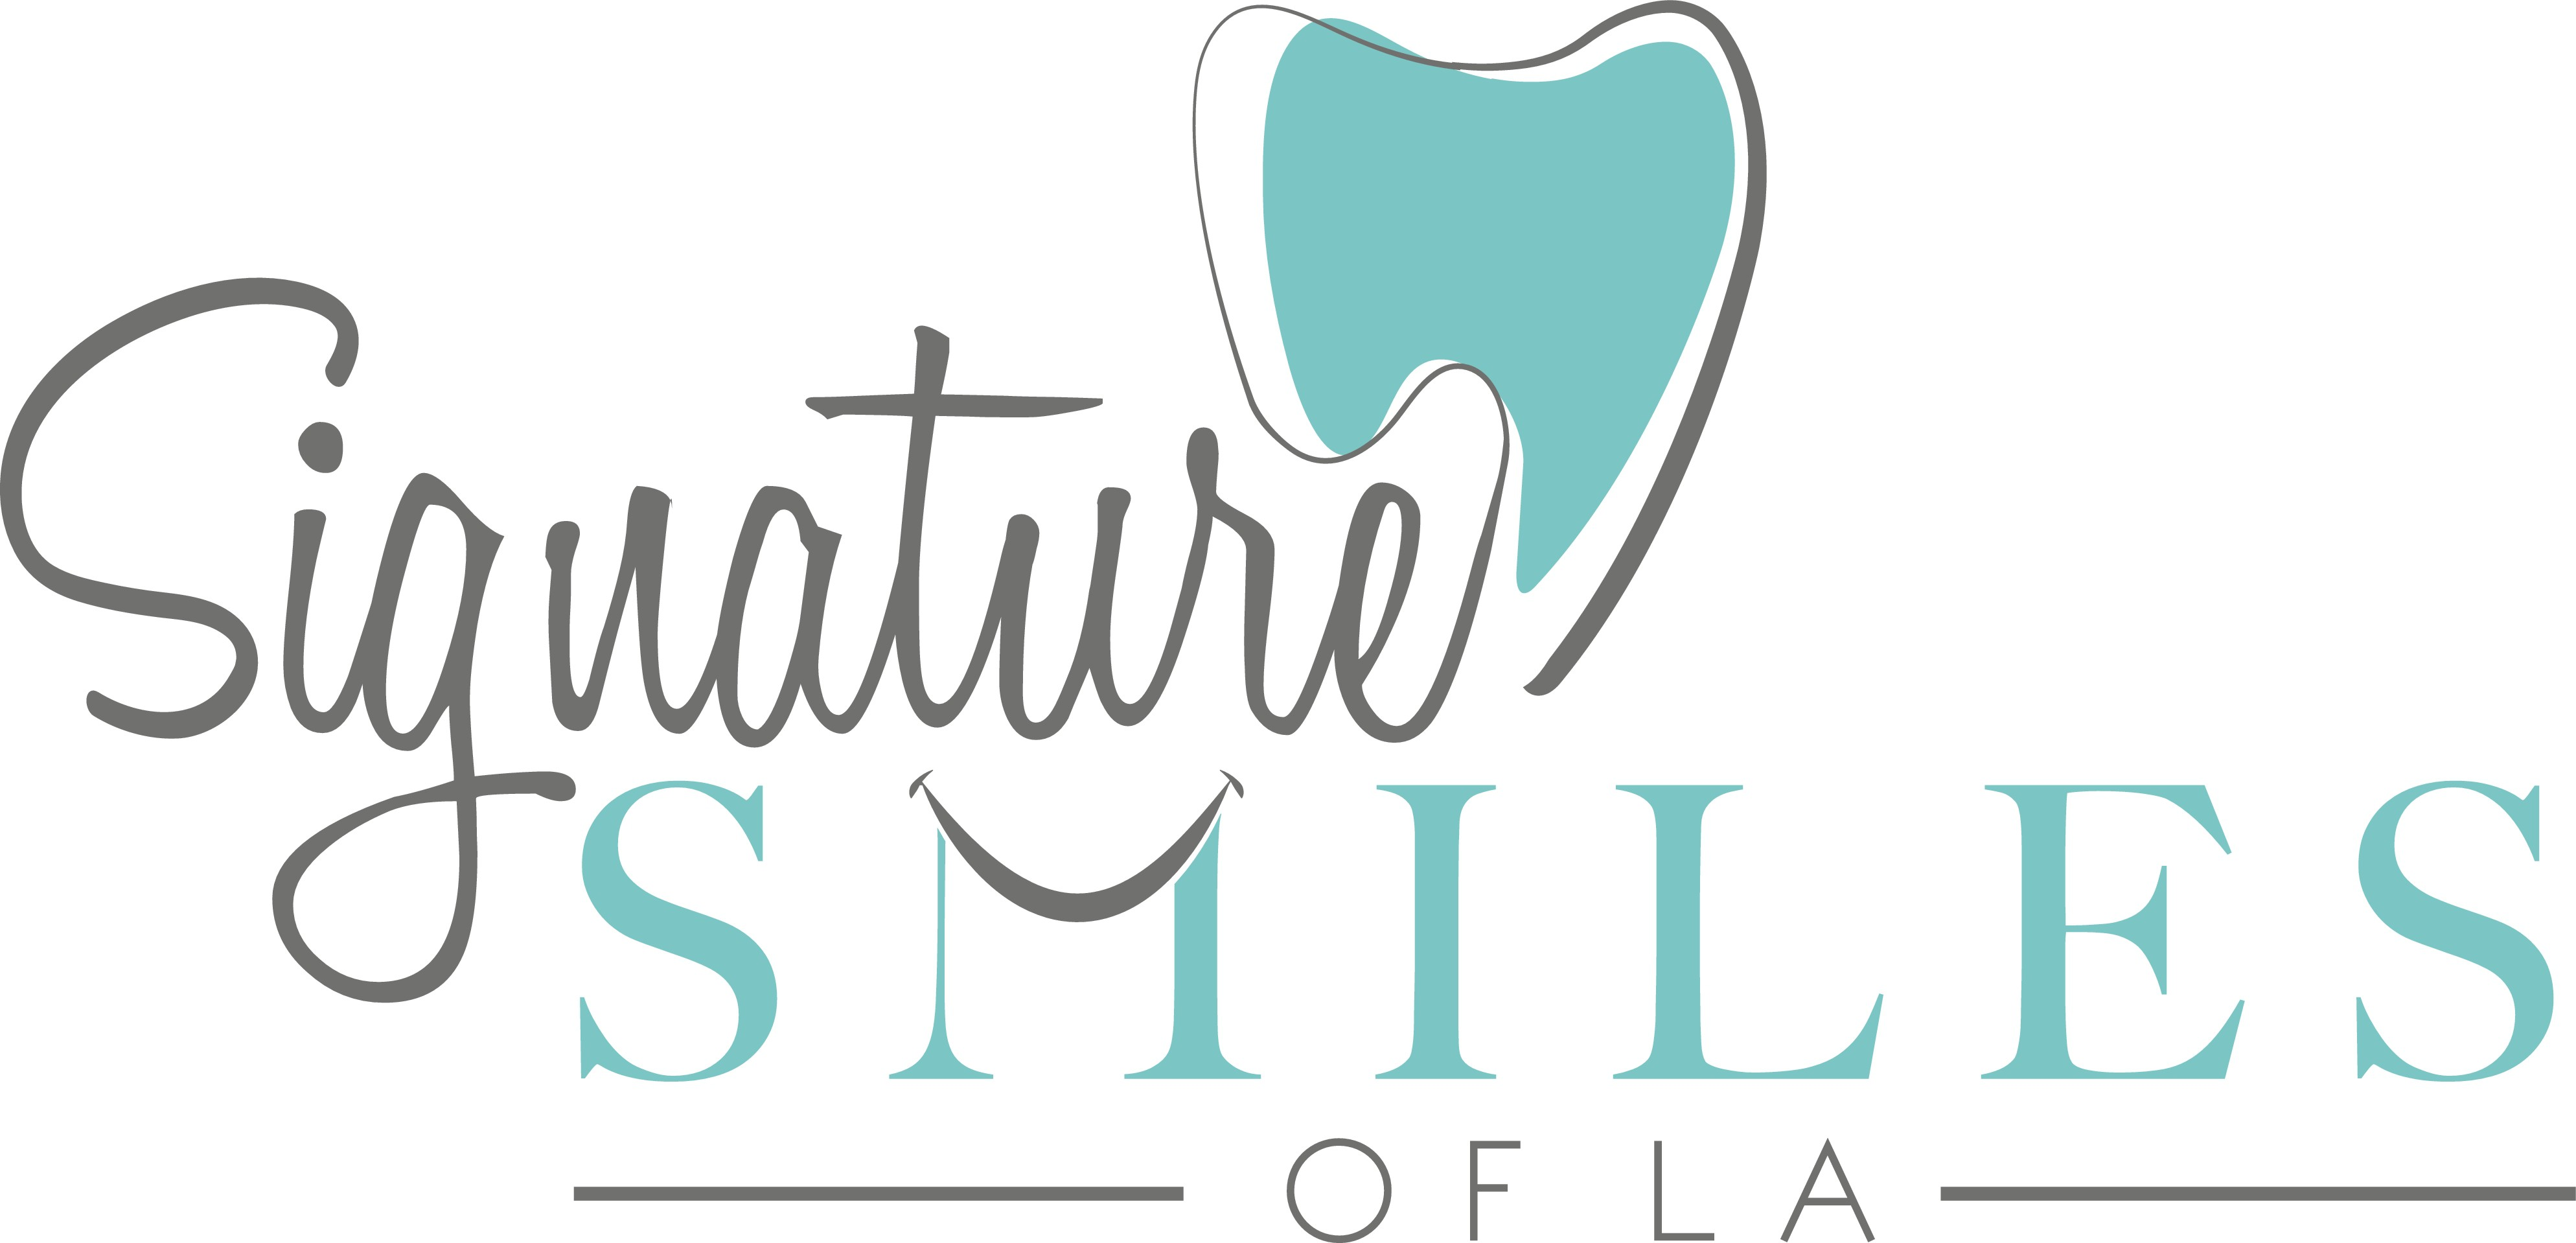 need your expert logo design for my dental practice in encino california